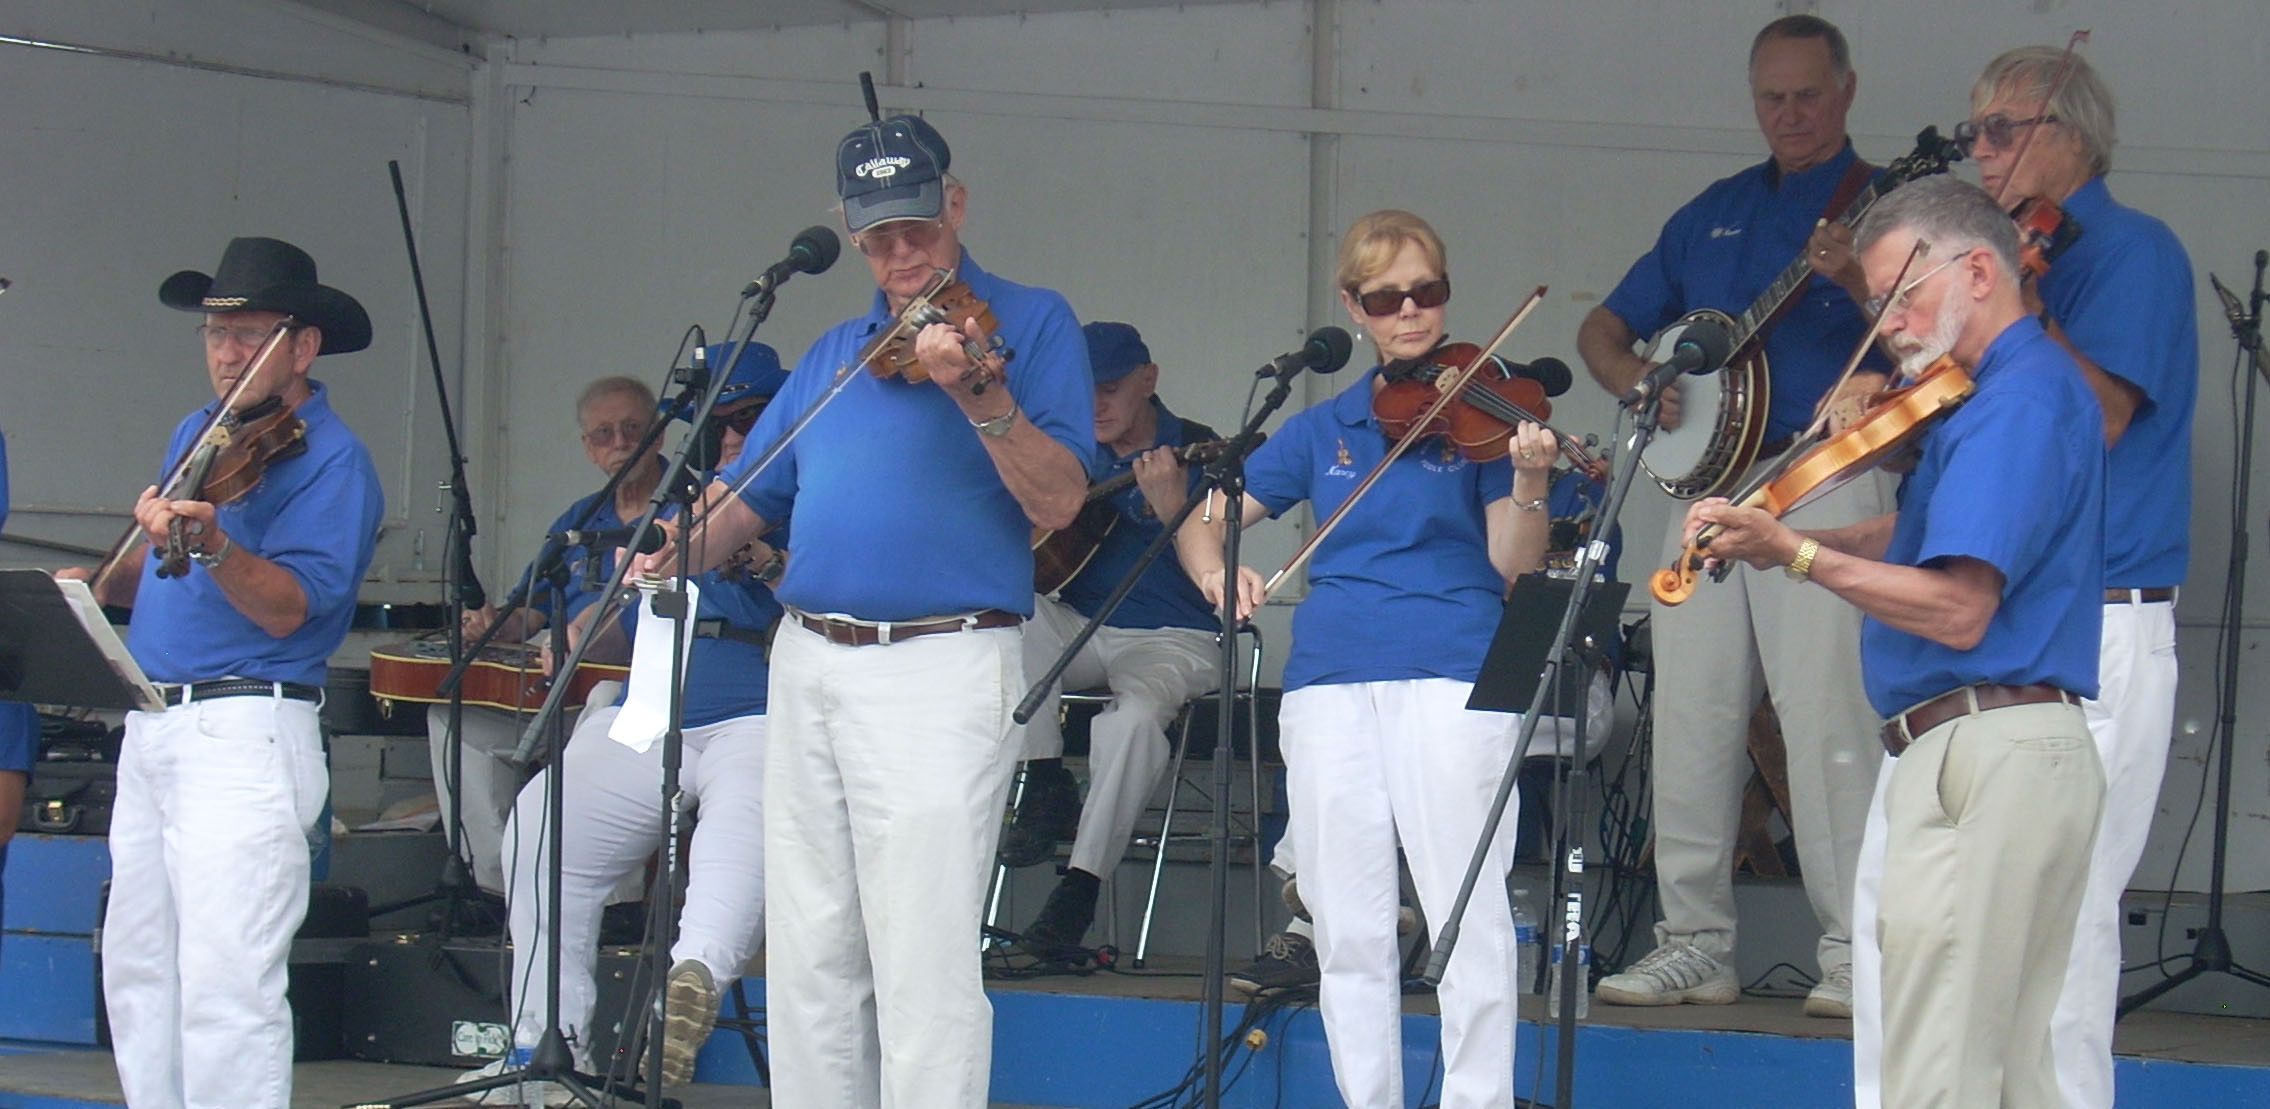 Fiddlers at Farmer's Market June 6th